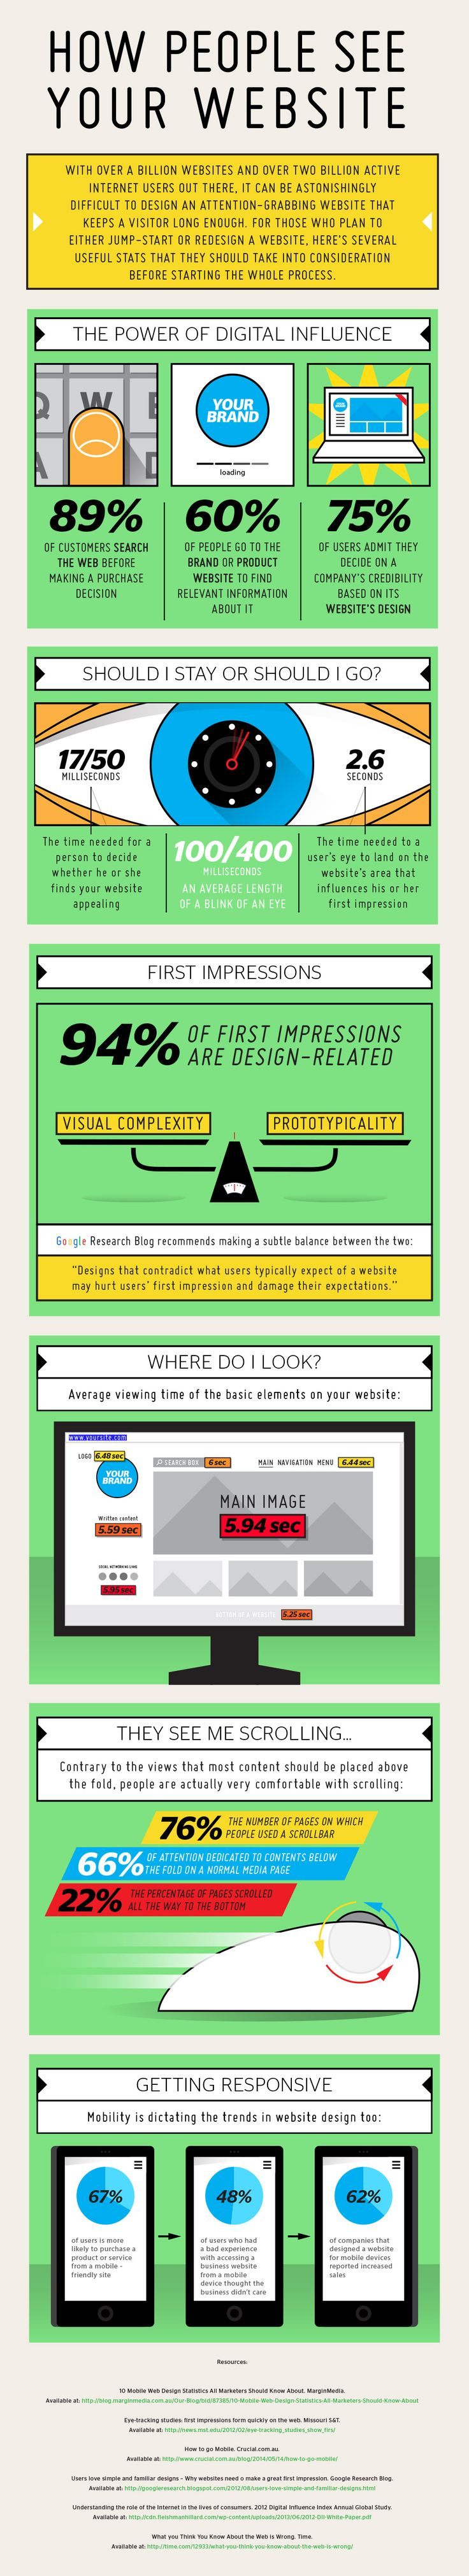 How People See Your Website - #Infographic                                                                                                                                                     More